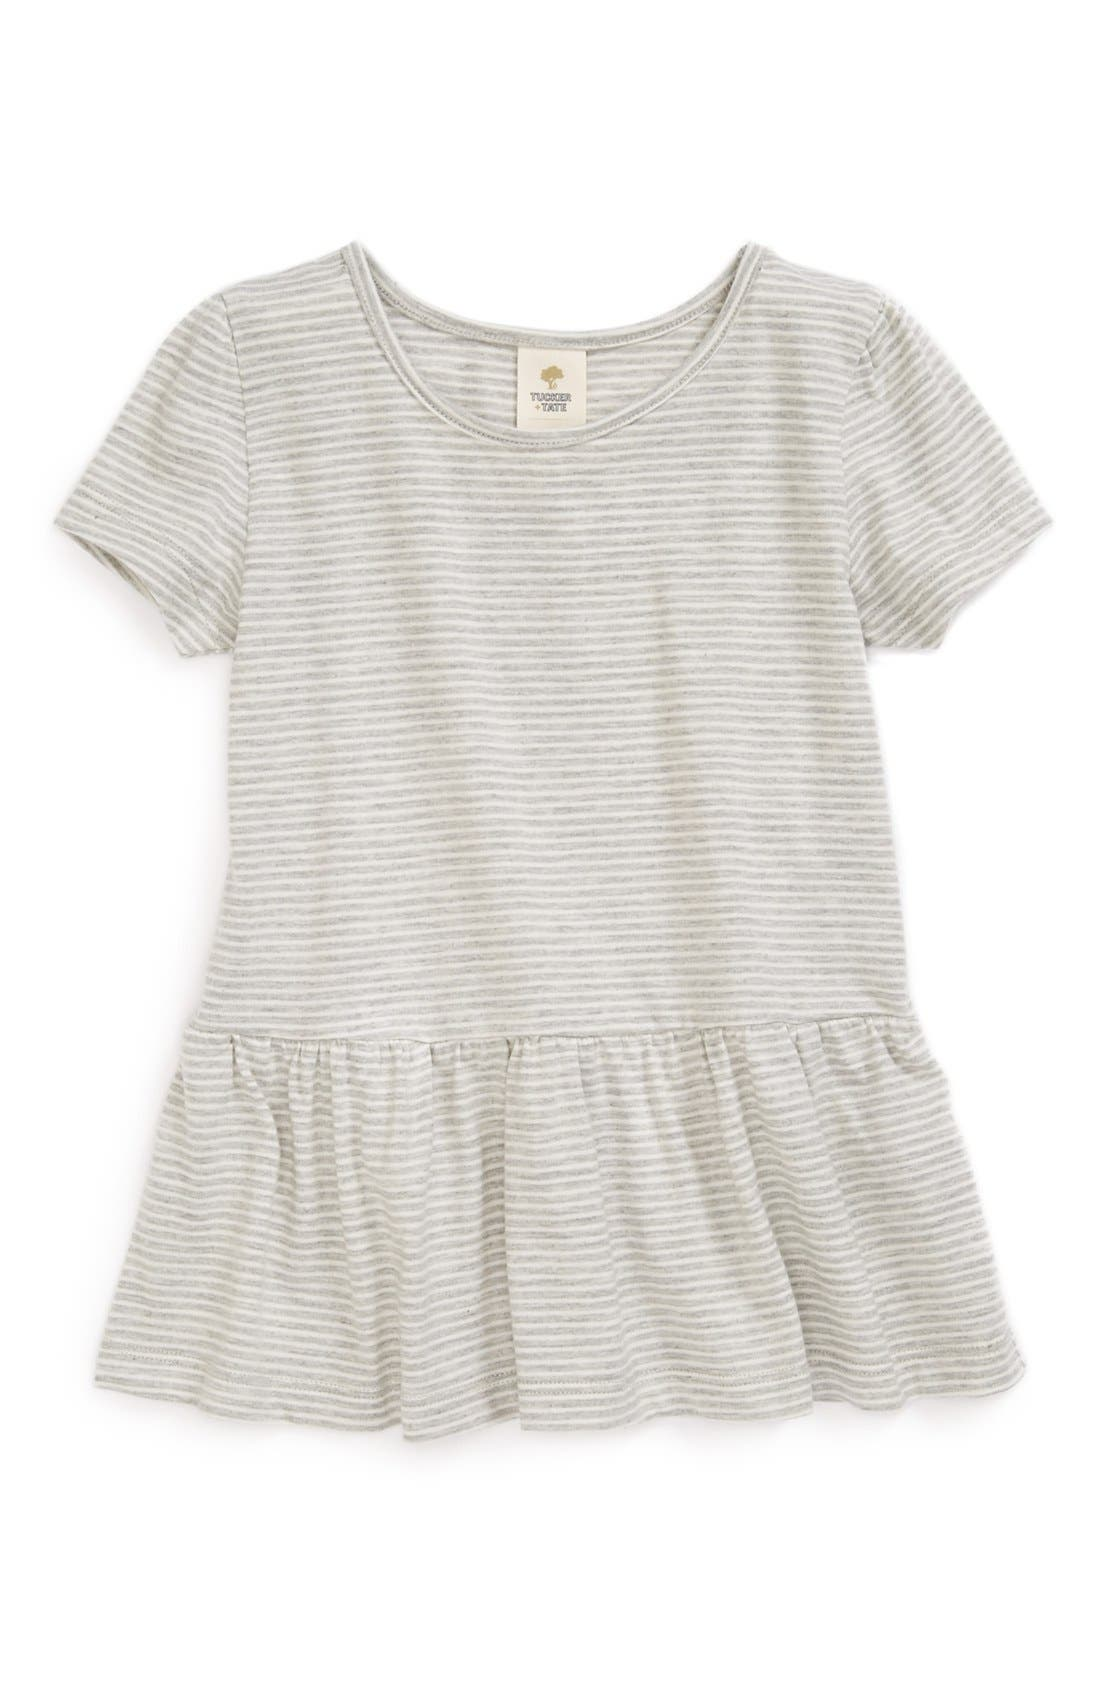 Main Image - Tucker + Tate 'Shania' Knit Tunic (Toddler Girls)